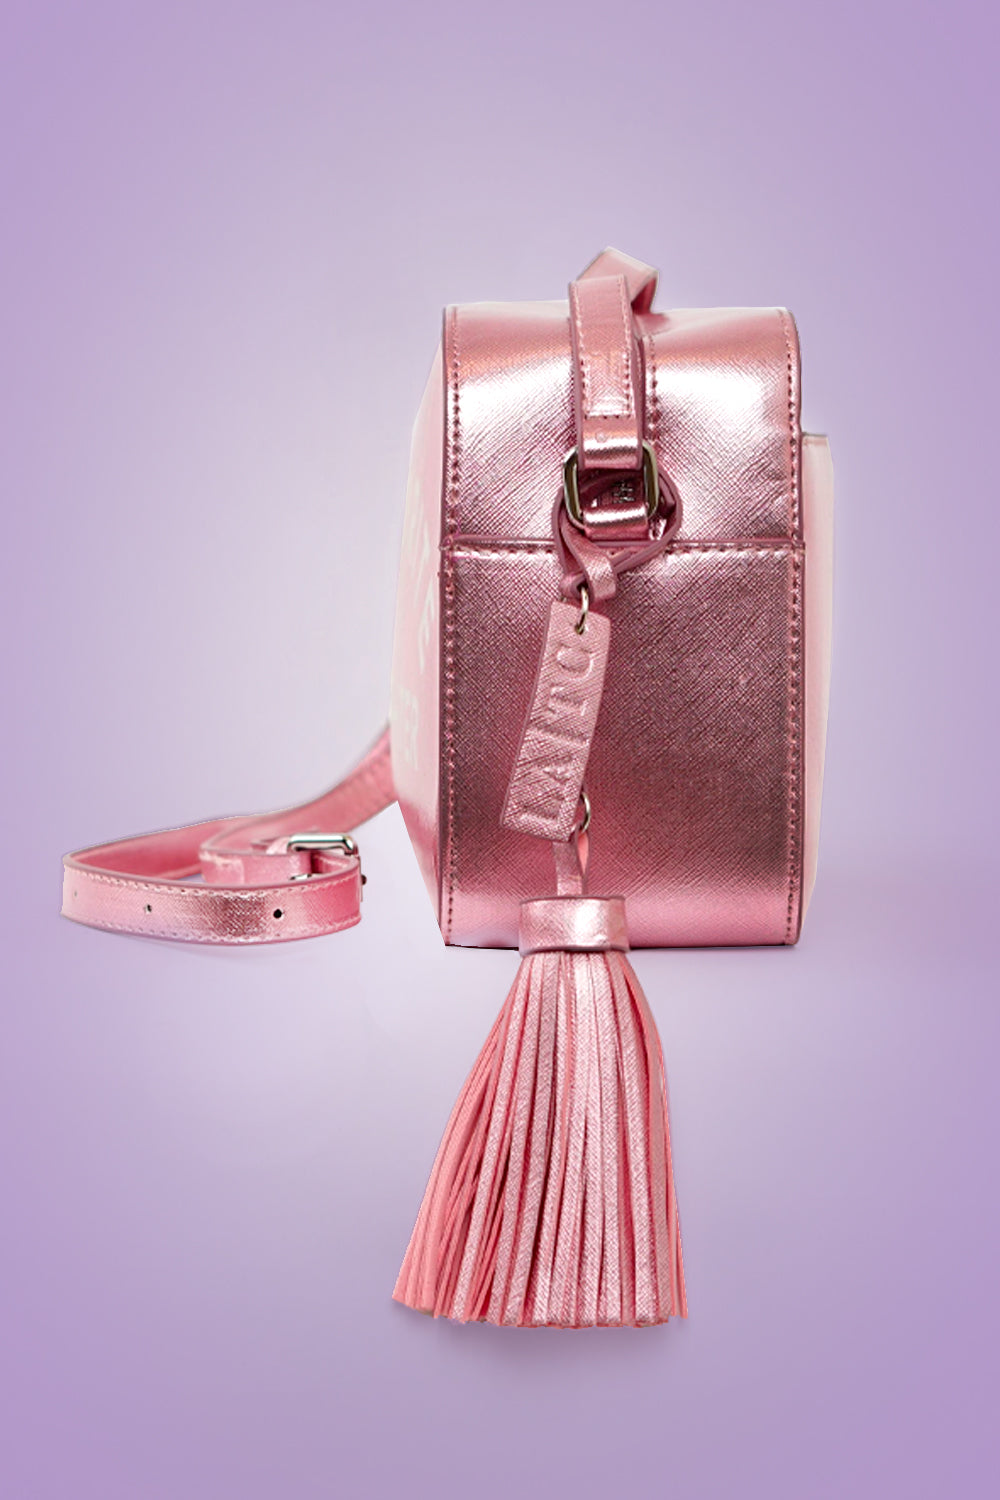 VEGAN CROSSBODY BAG - Favorite Daughter (Pink)